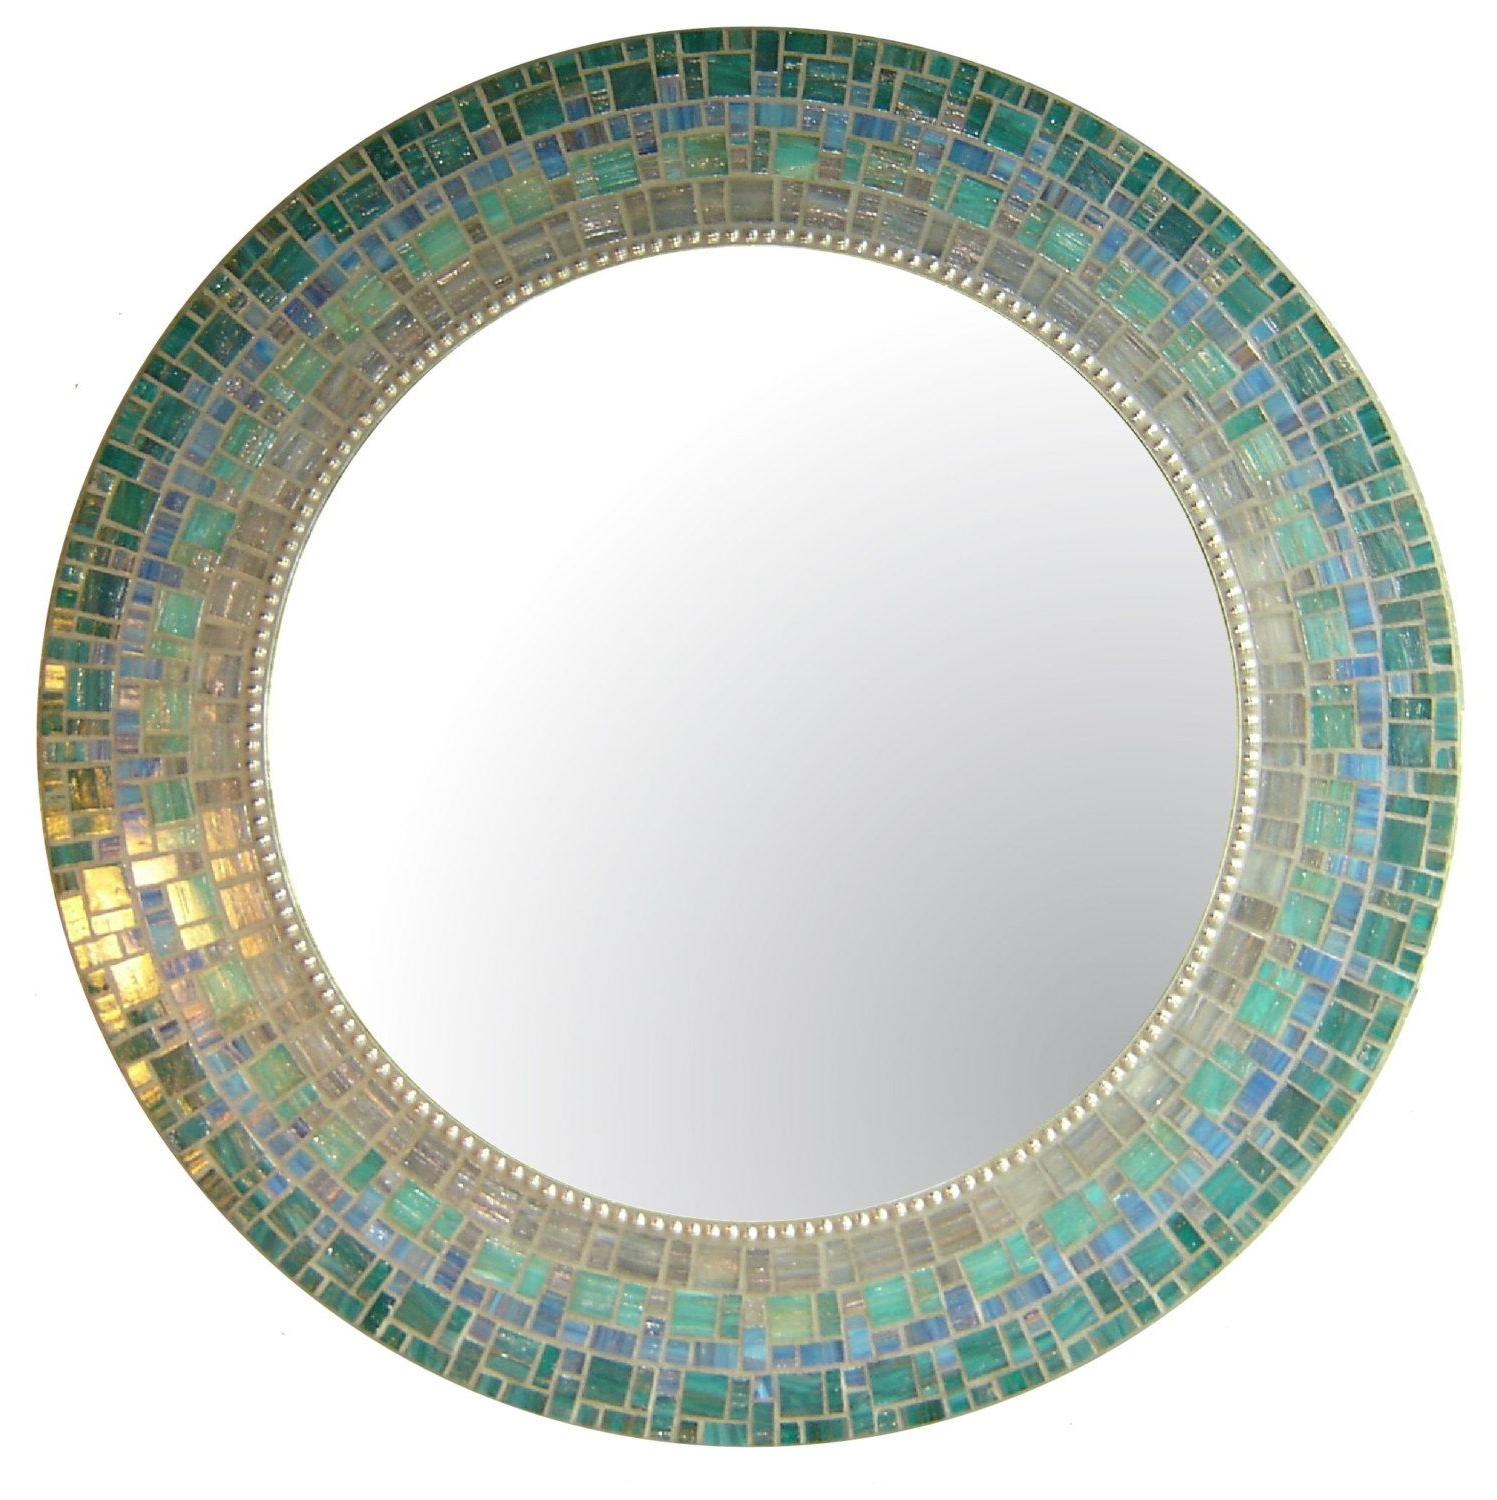 Beachy Mirror Pertaining To Beachy Wall Mirrors (View 1 of 20)